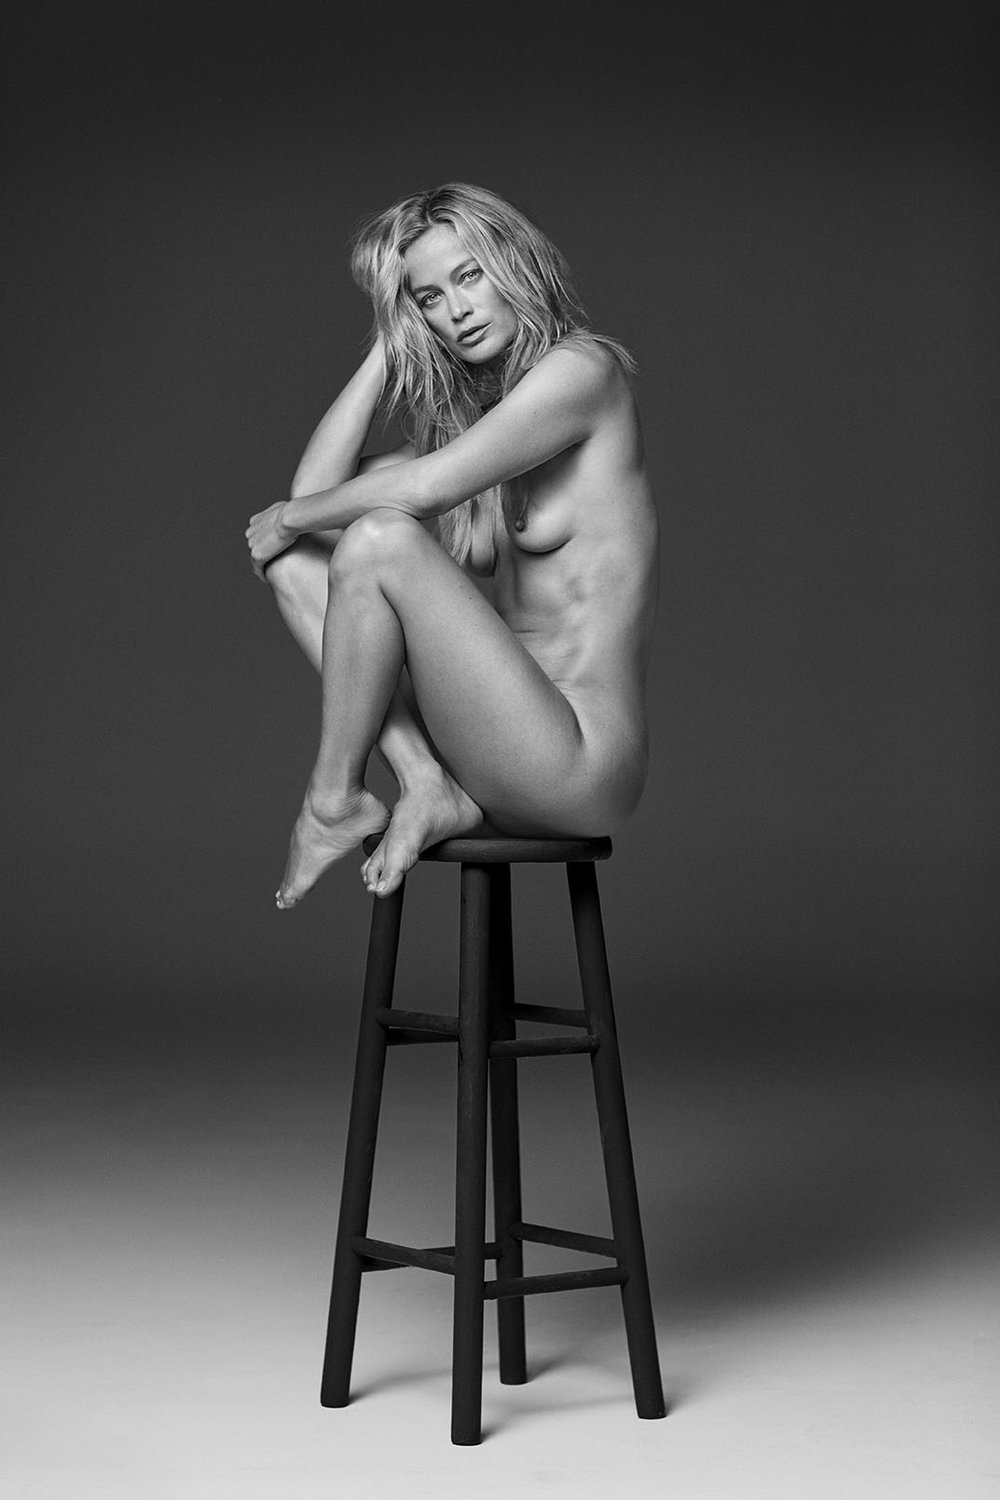 Carolyn-on-Set-Stool-by-Russell-James.jpg